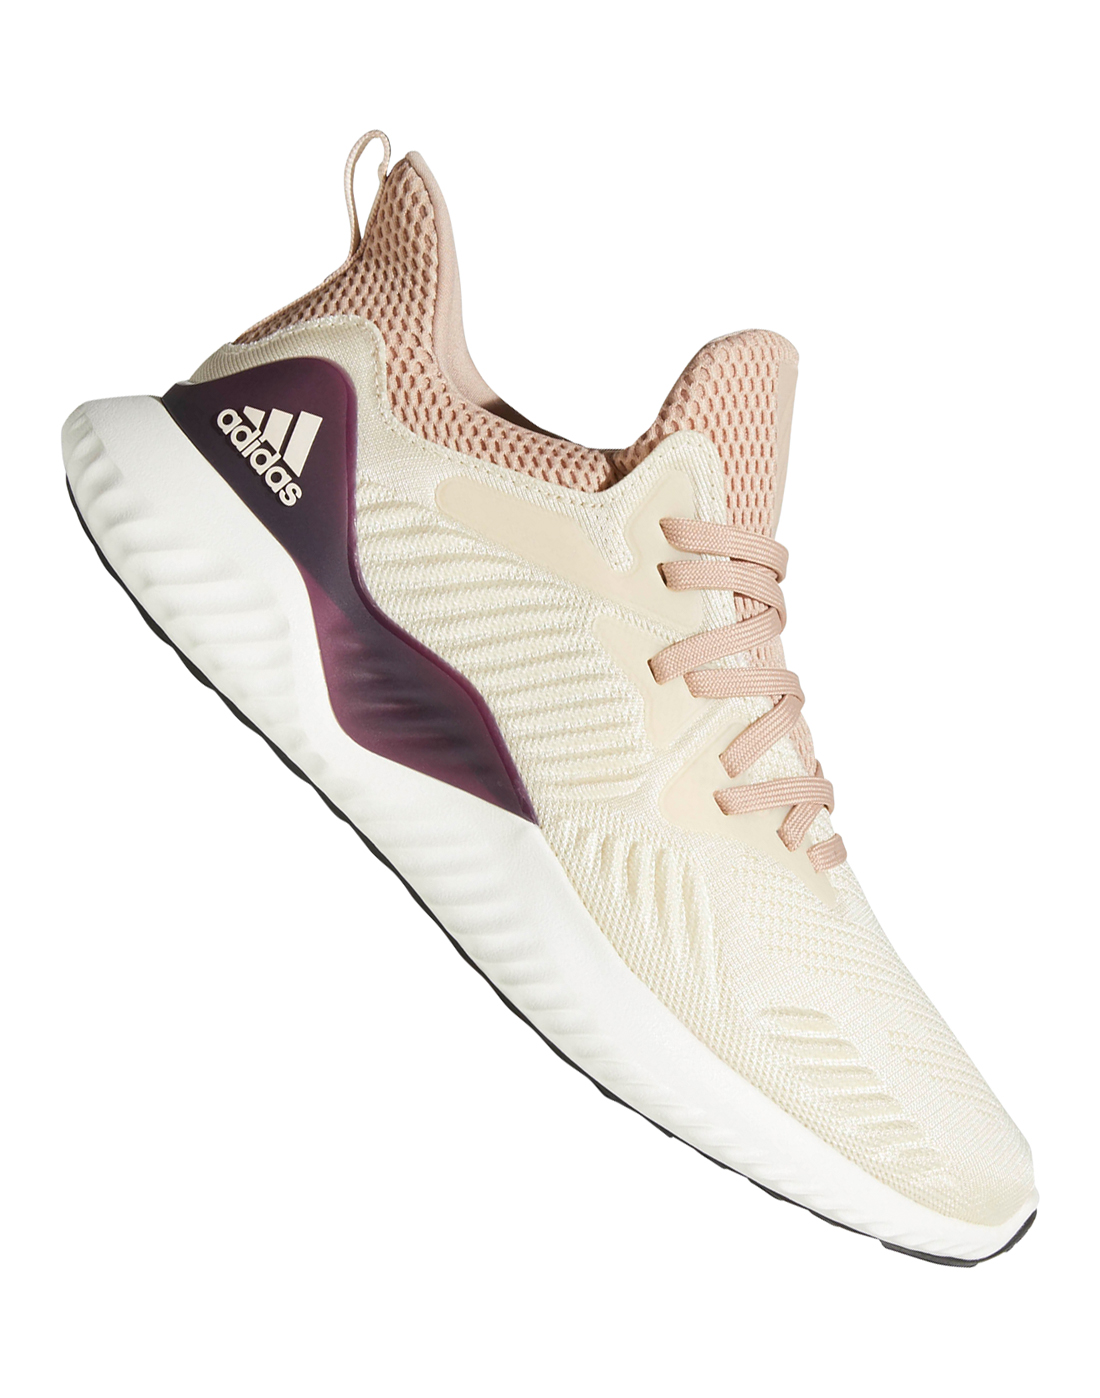 official photos 8f301 1a2e2 Livsstil Adidas Womens Sport Alphabounce Beyond nZTwSnxrR